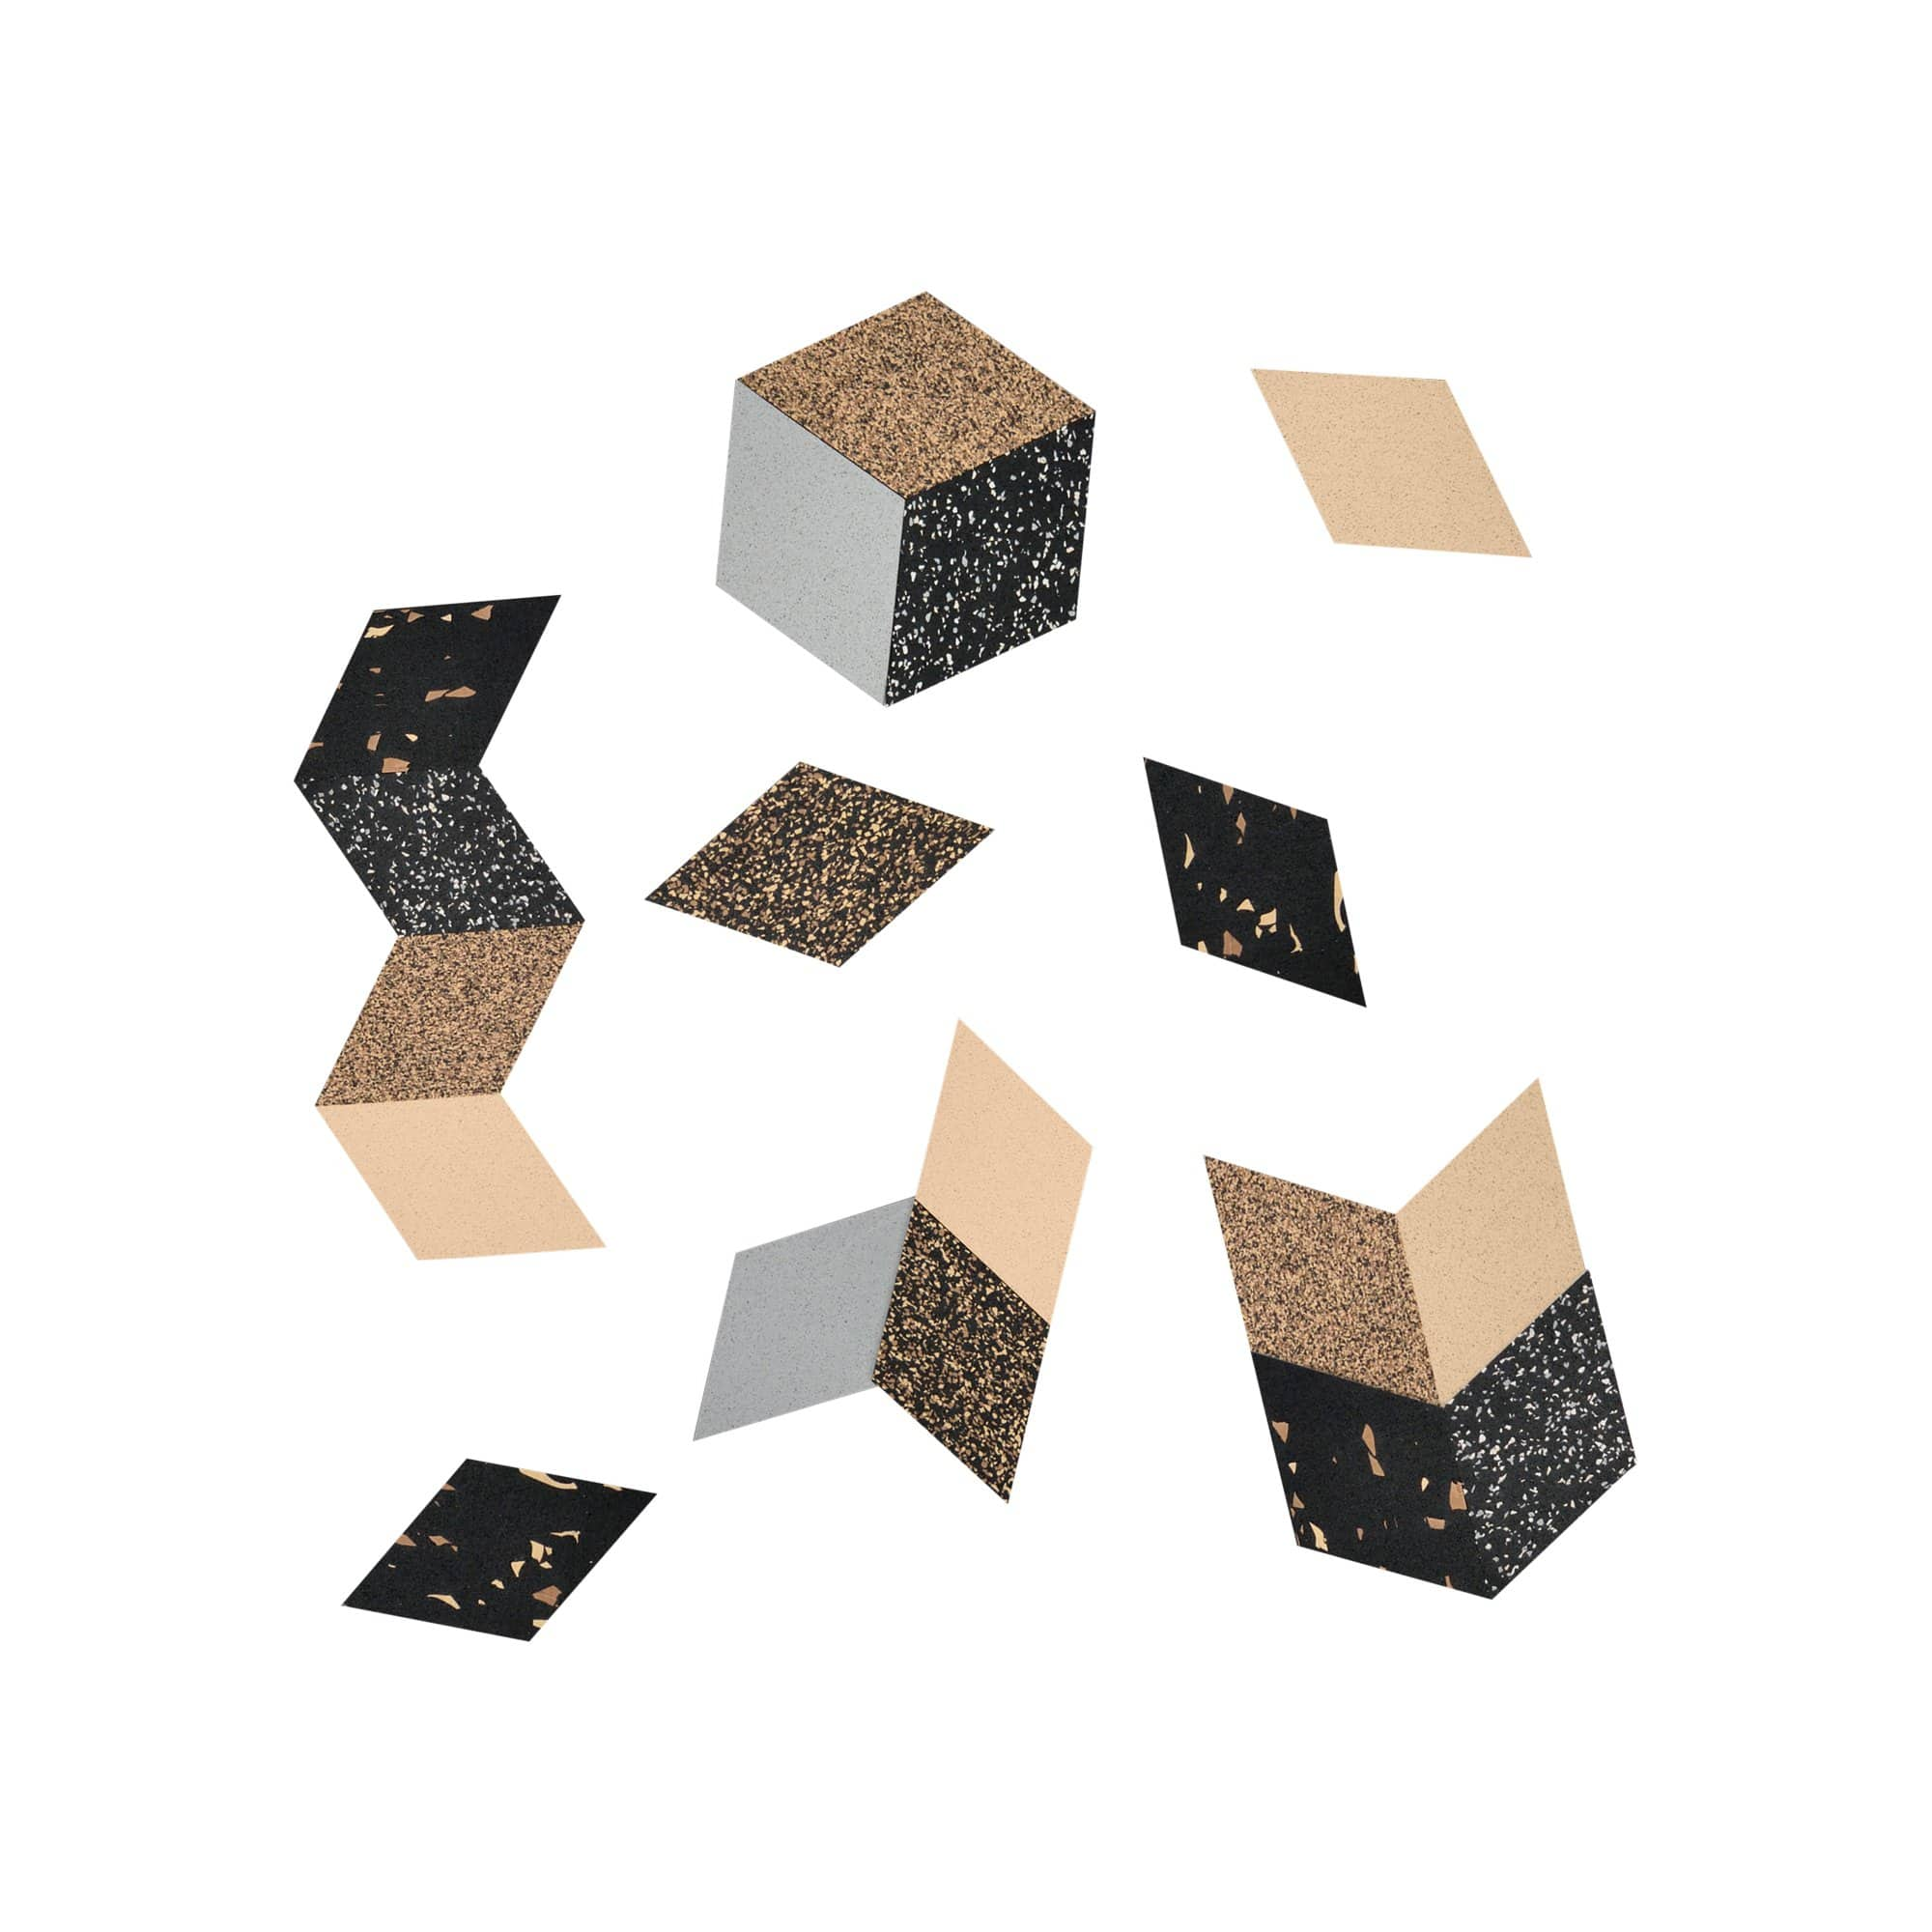 Rhombus Table Trivets